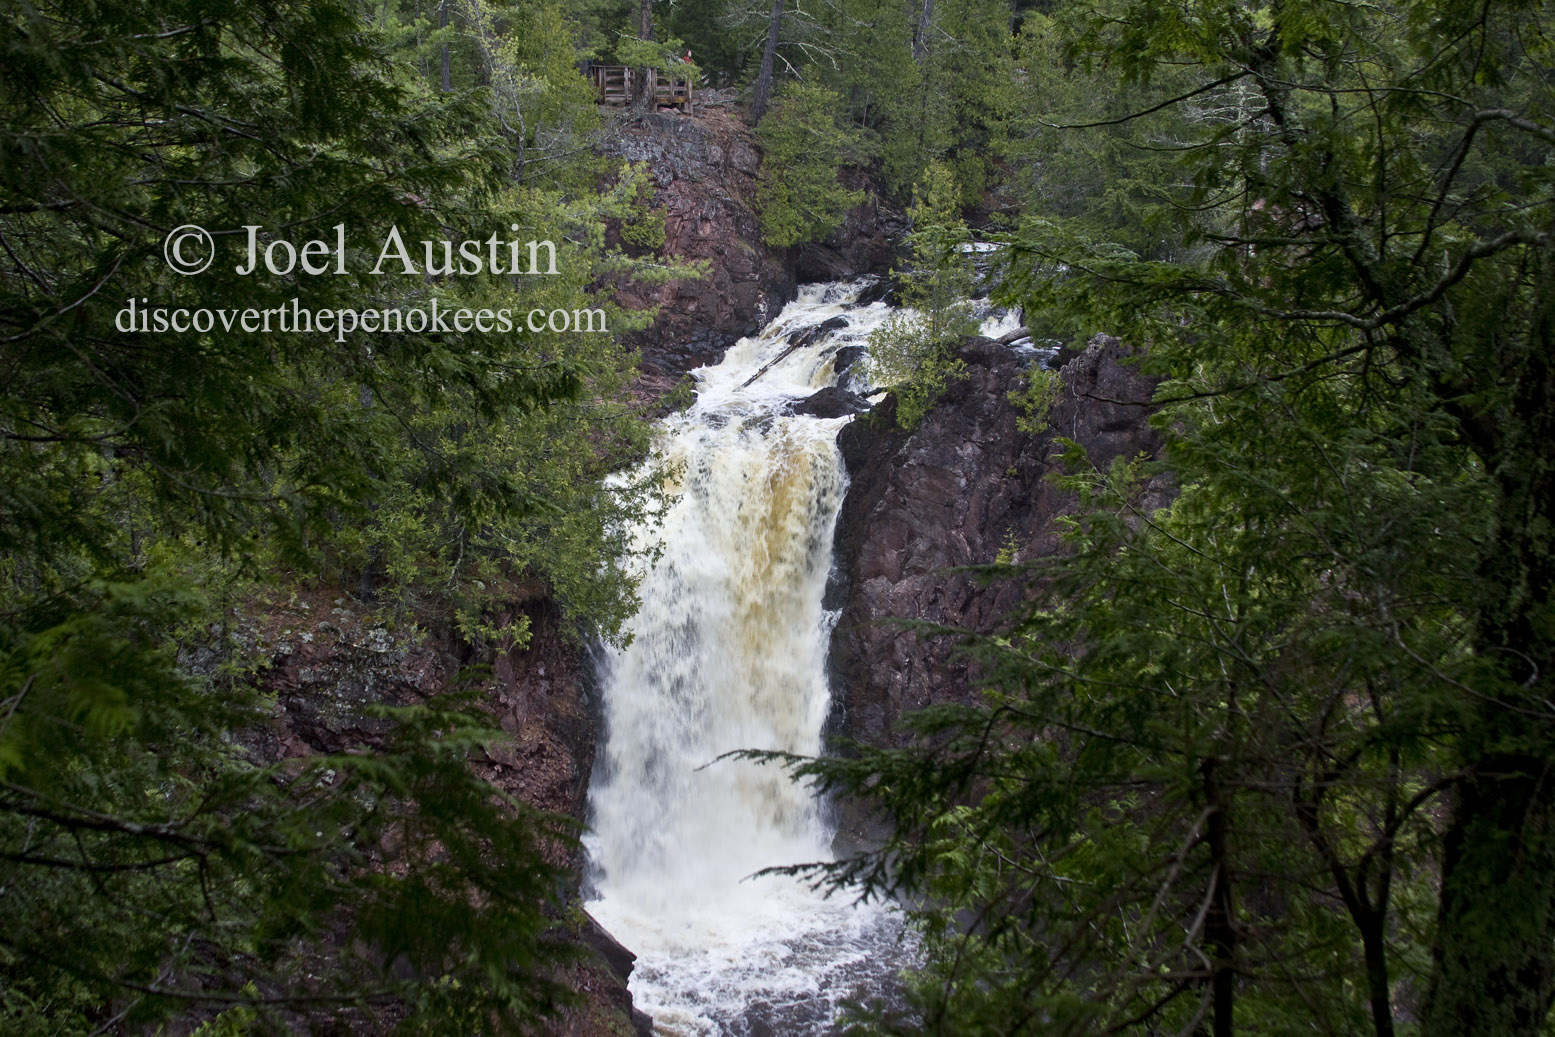 Water cascading over Brownstone Falls into the Bad River, in Copper Falls State Park.